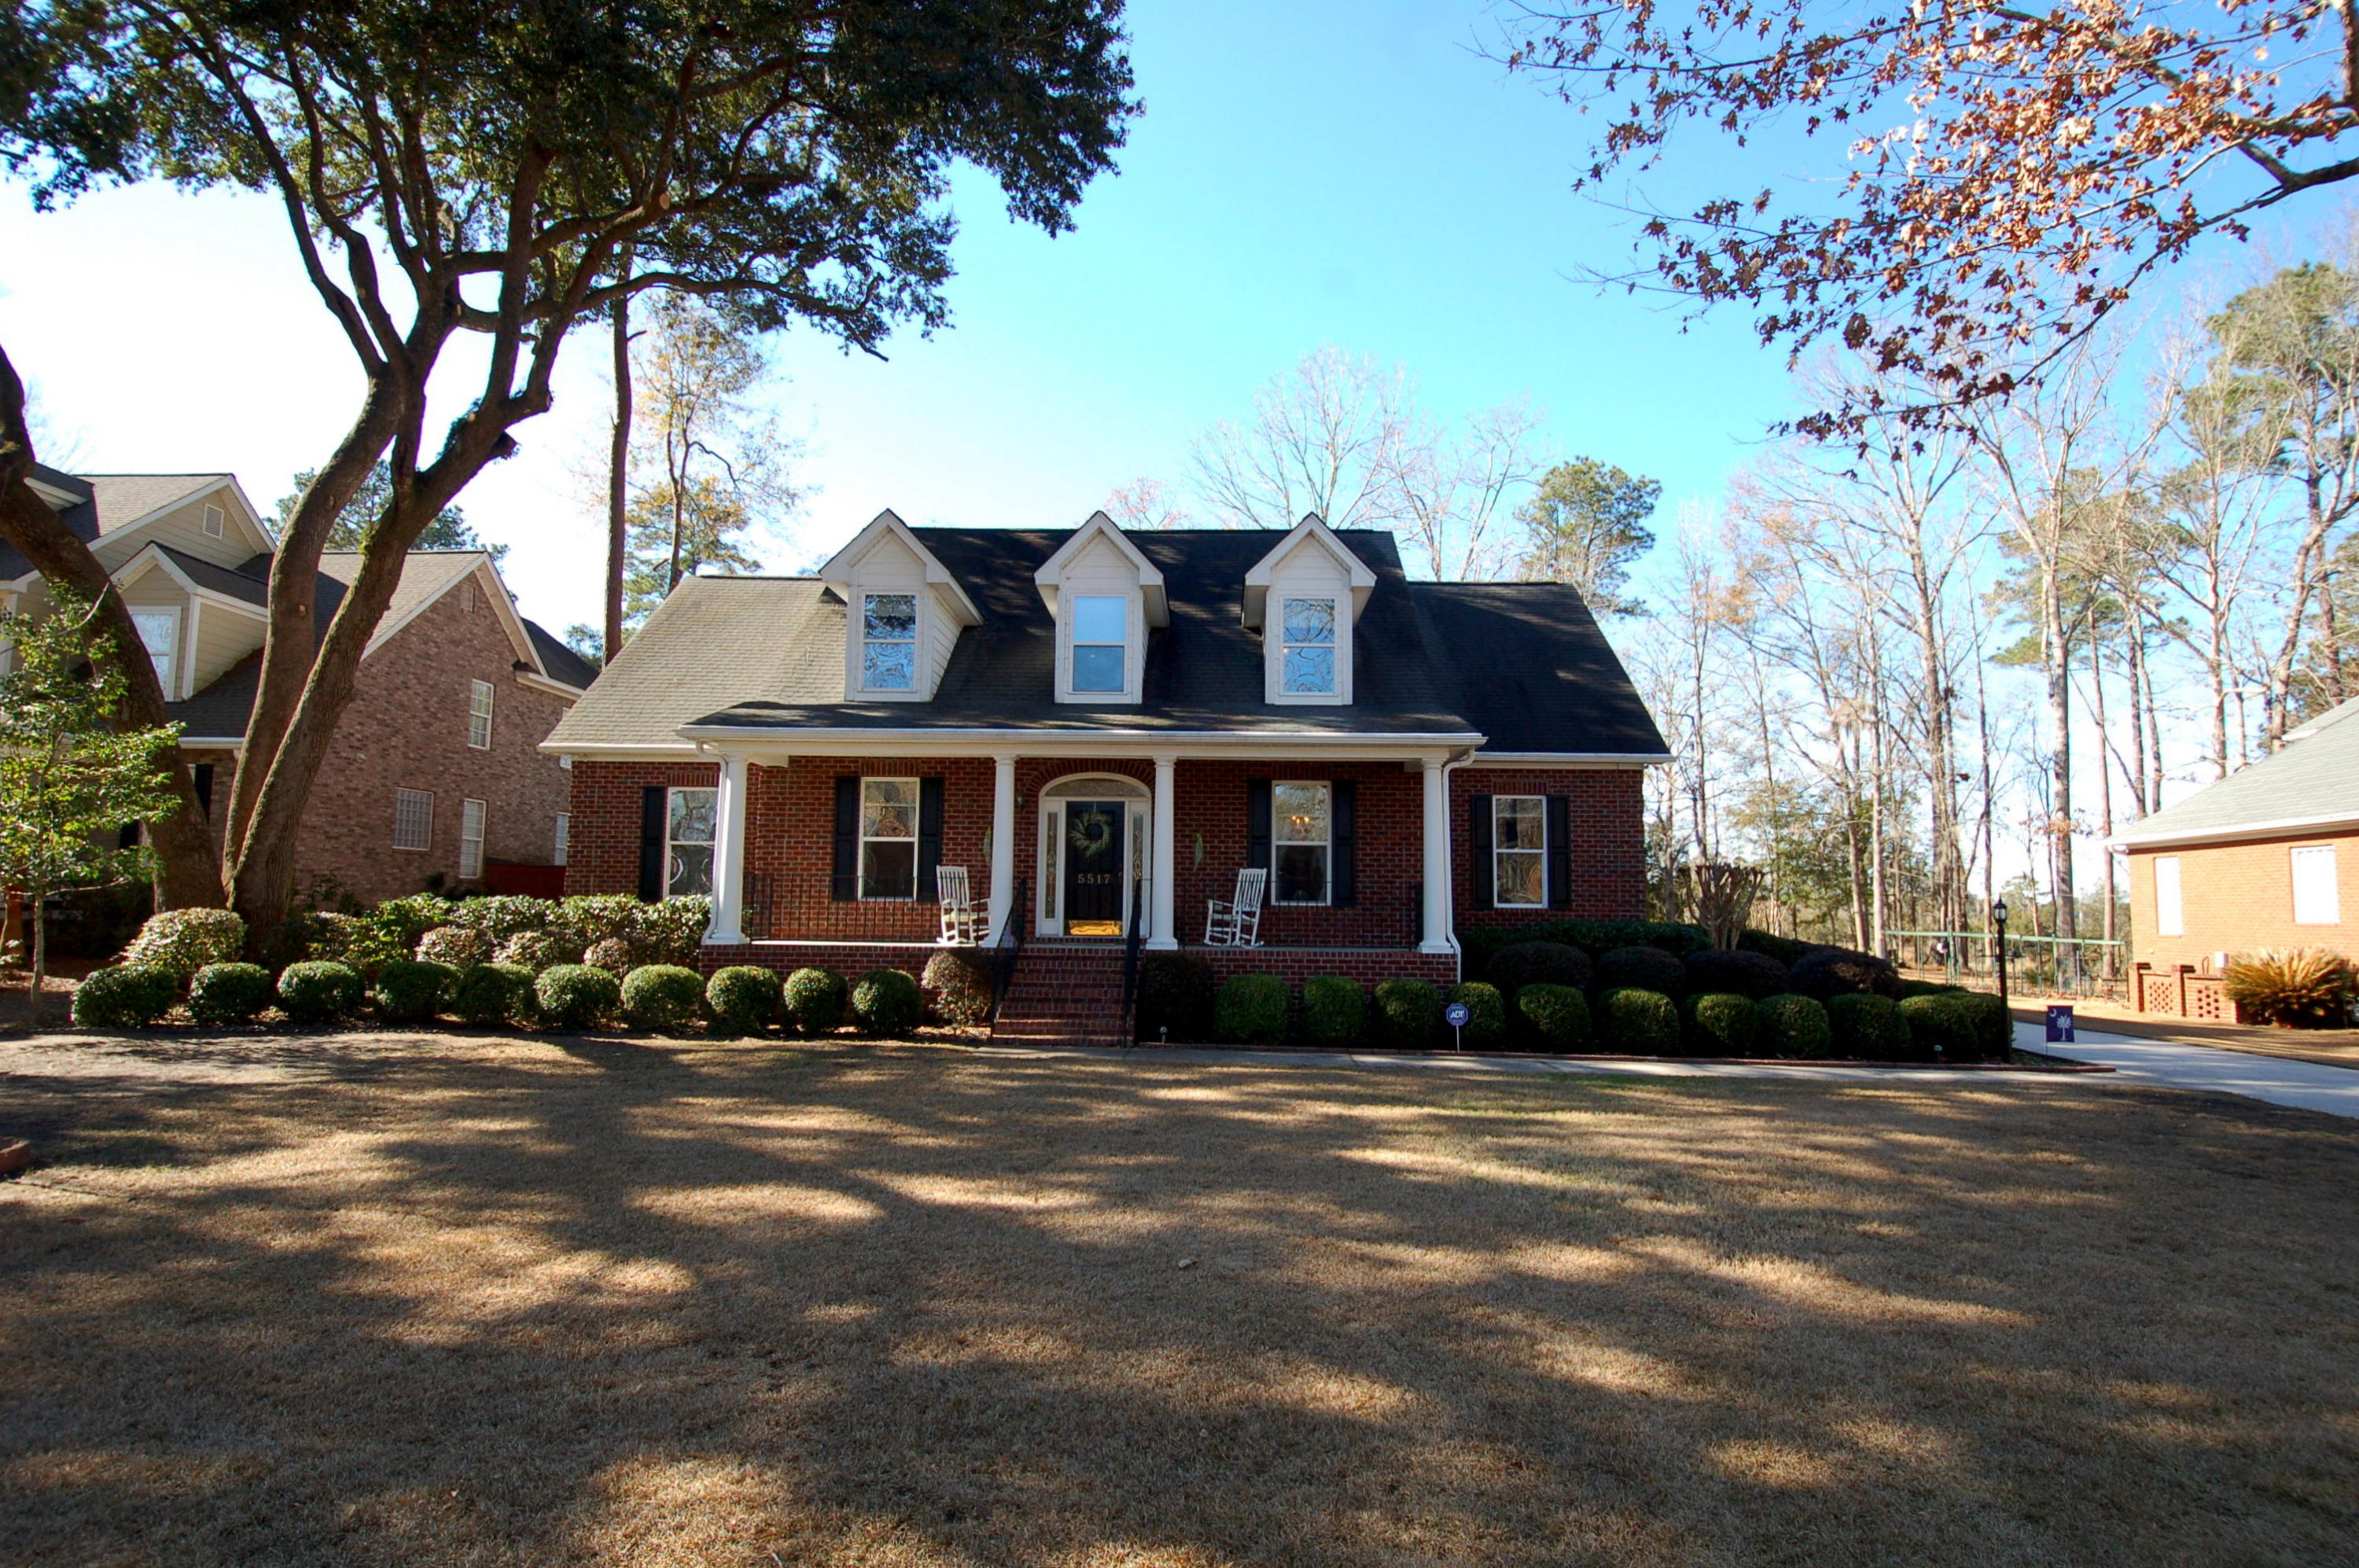 Photo of 5517 Clearview Dr, North Charleston, SC 29420